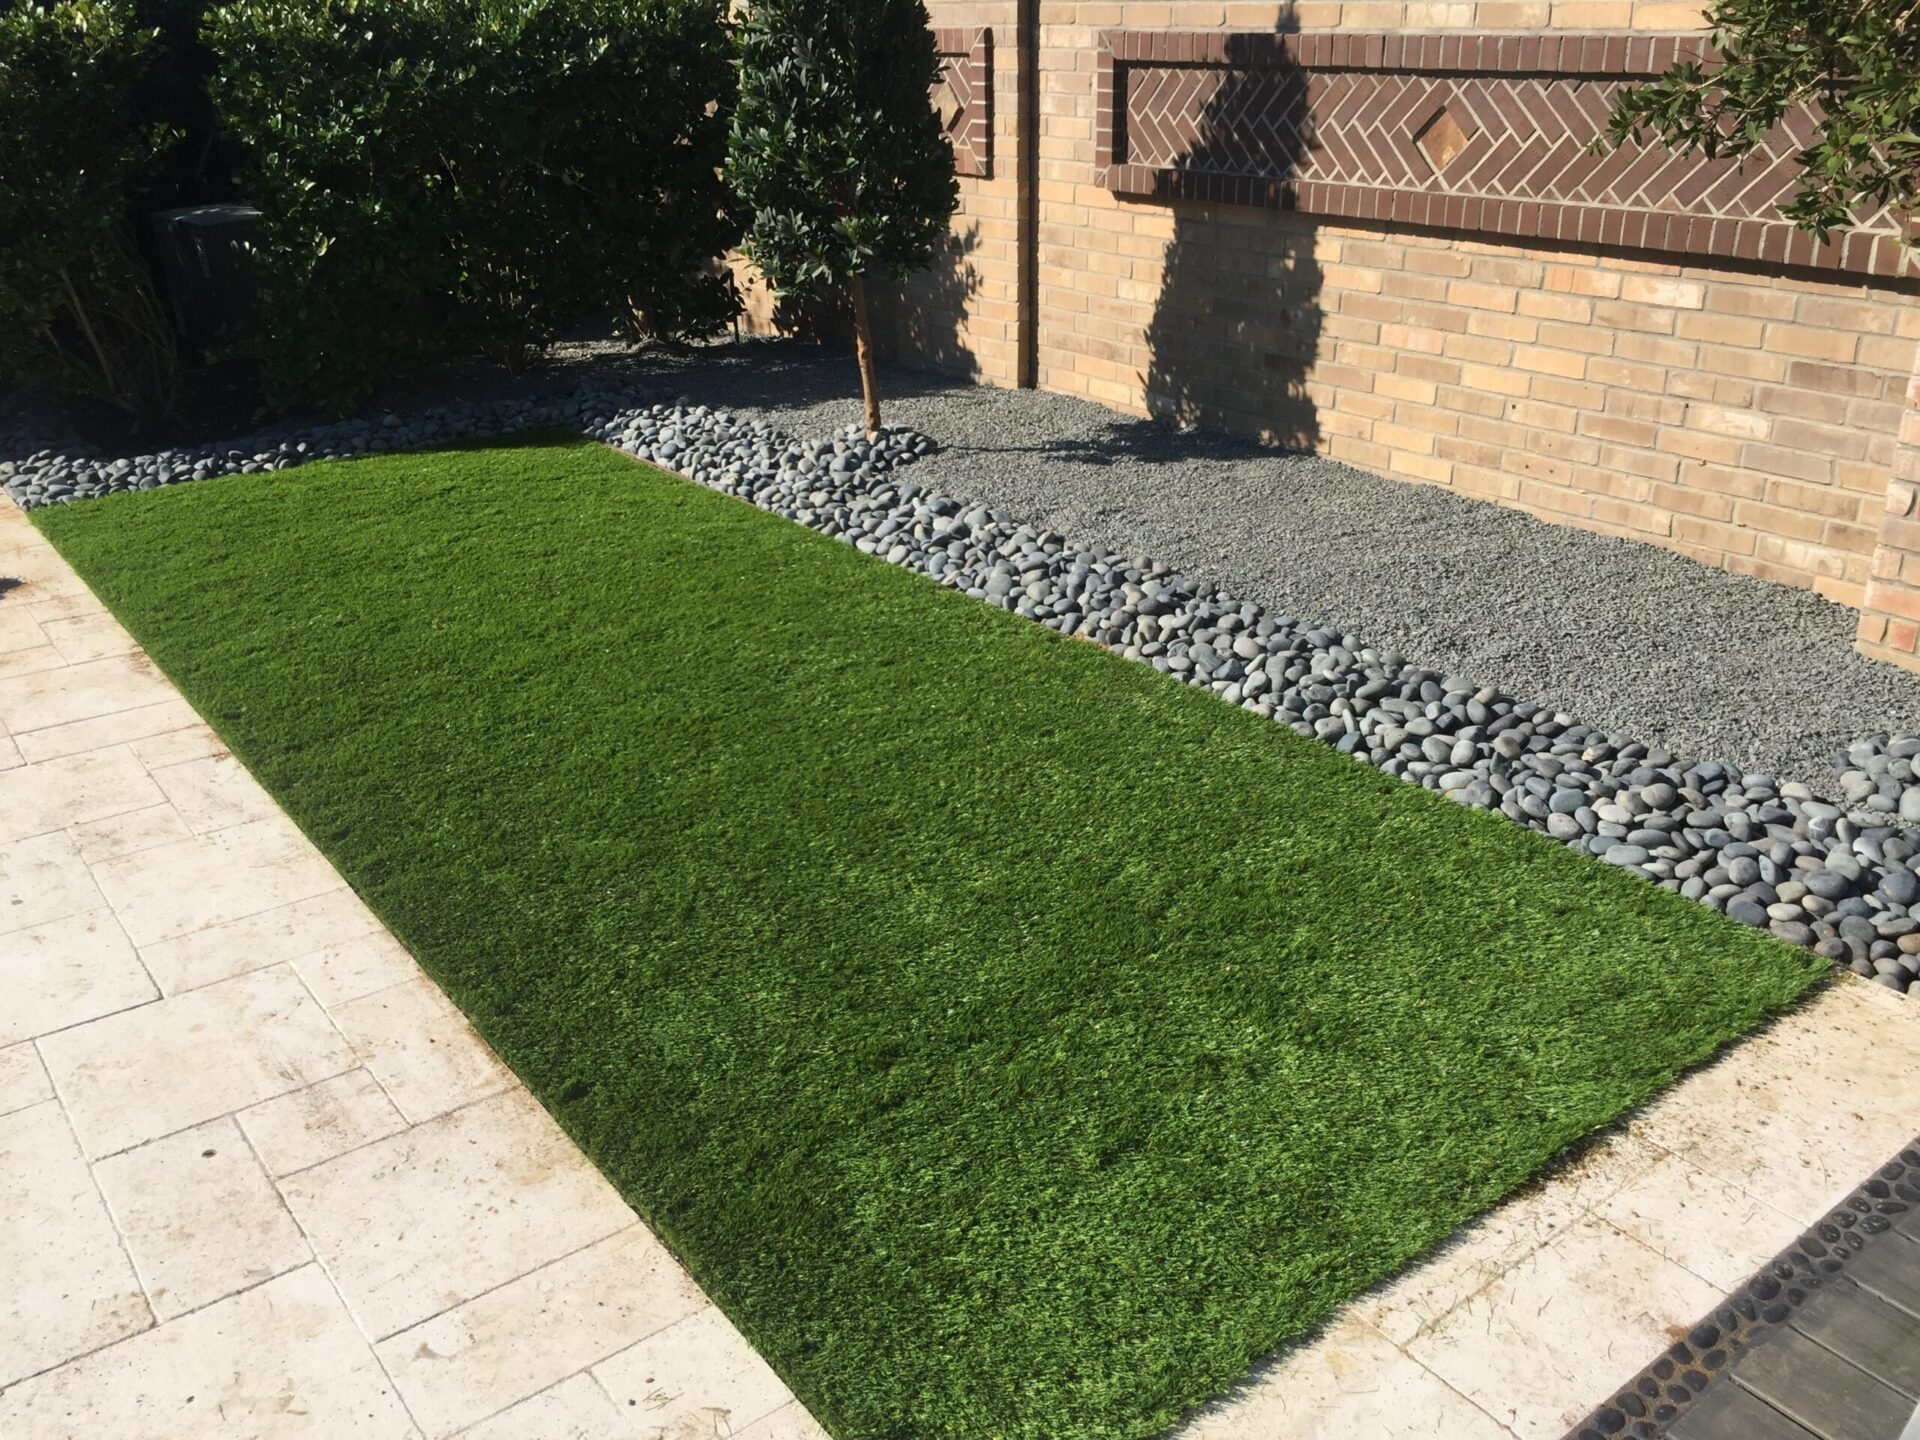 SyntheticTurf